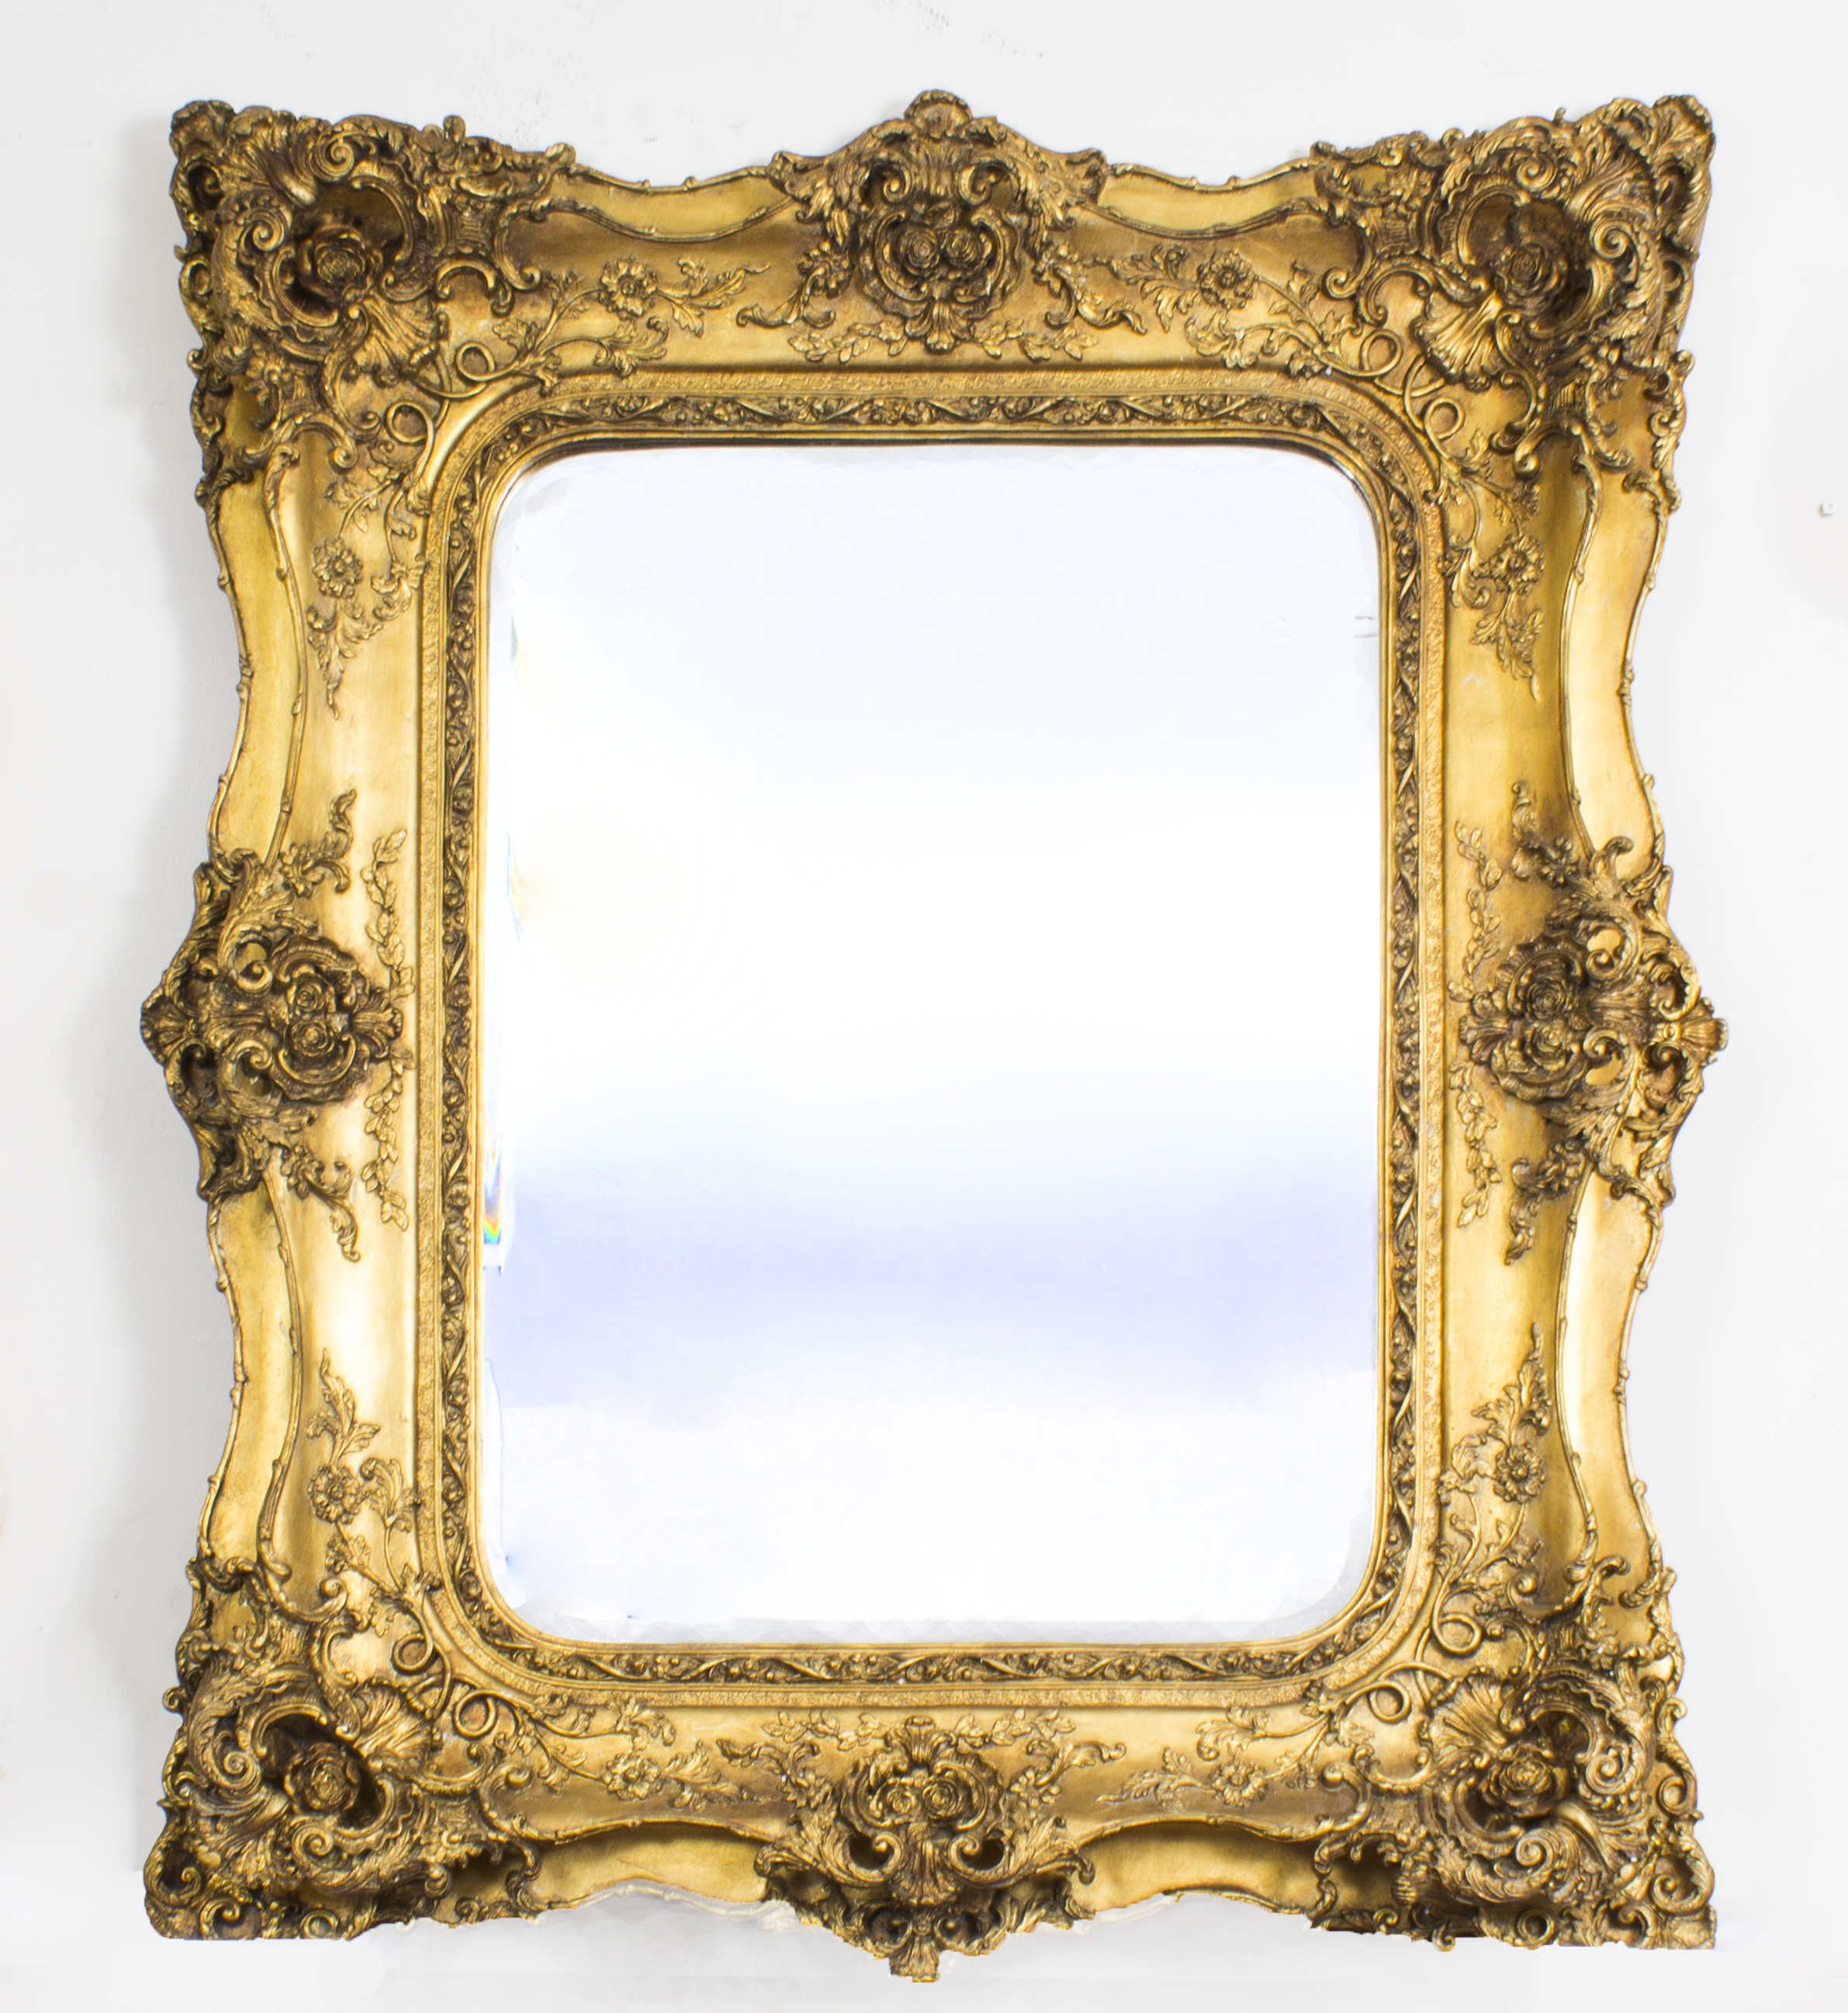 Stunning Large Ornate Italian Gilded Mirror 122 X 101 Cm With Ornate Gilt Mirrors (Image 13 of 15)